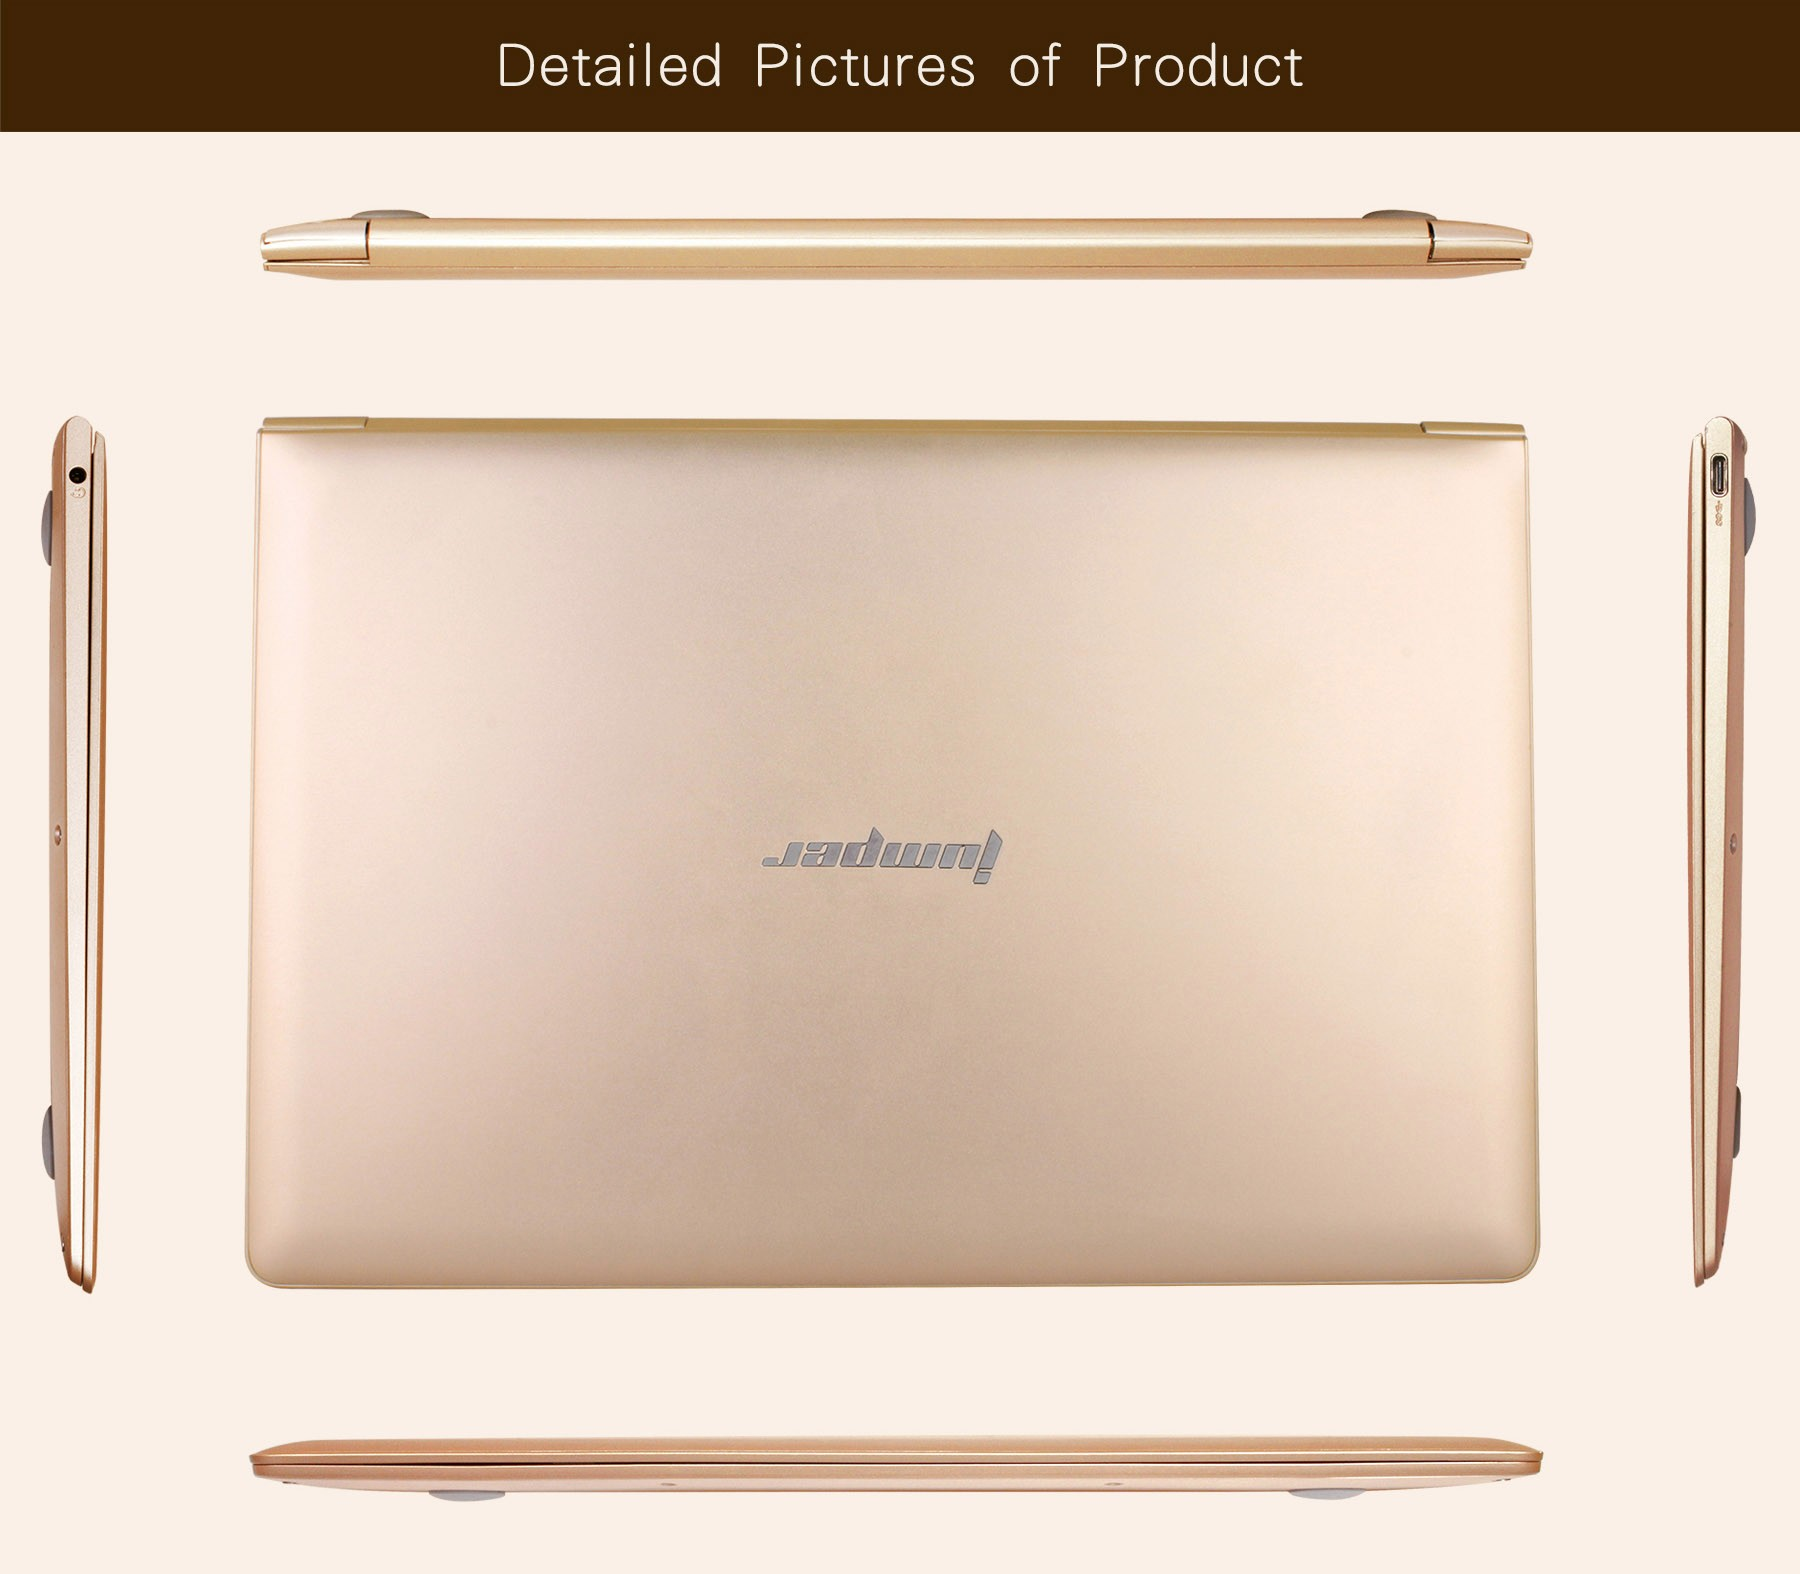 Jumper EZbook Air 8350 11.6 inch Notebook Windows 10 OS Intel Atom X5-Z8350 Quad Core 1.44GHz FHD Screen 4GB RAM 128GB EMMC Bluetooth 4.0 Type-C Camera